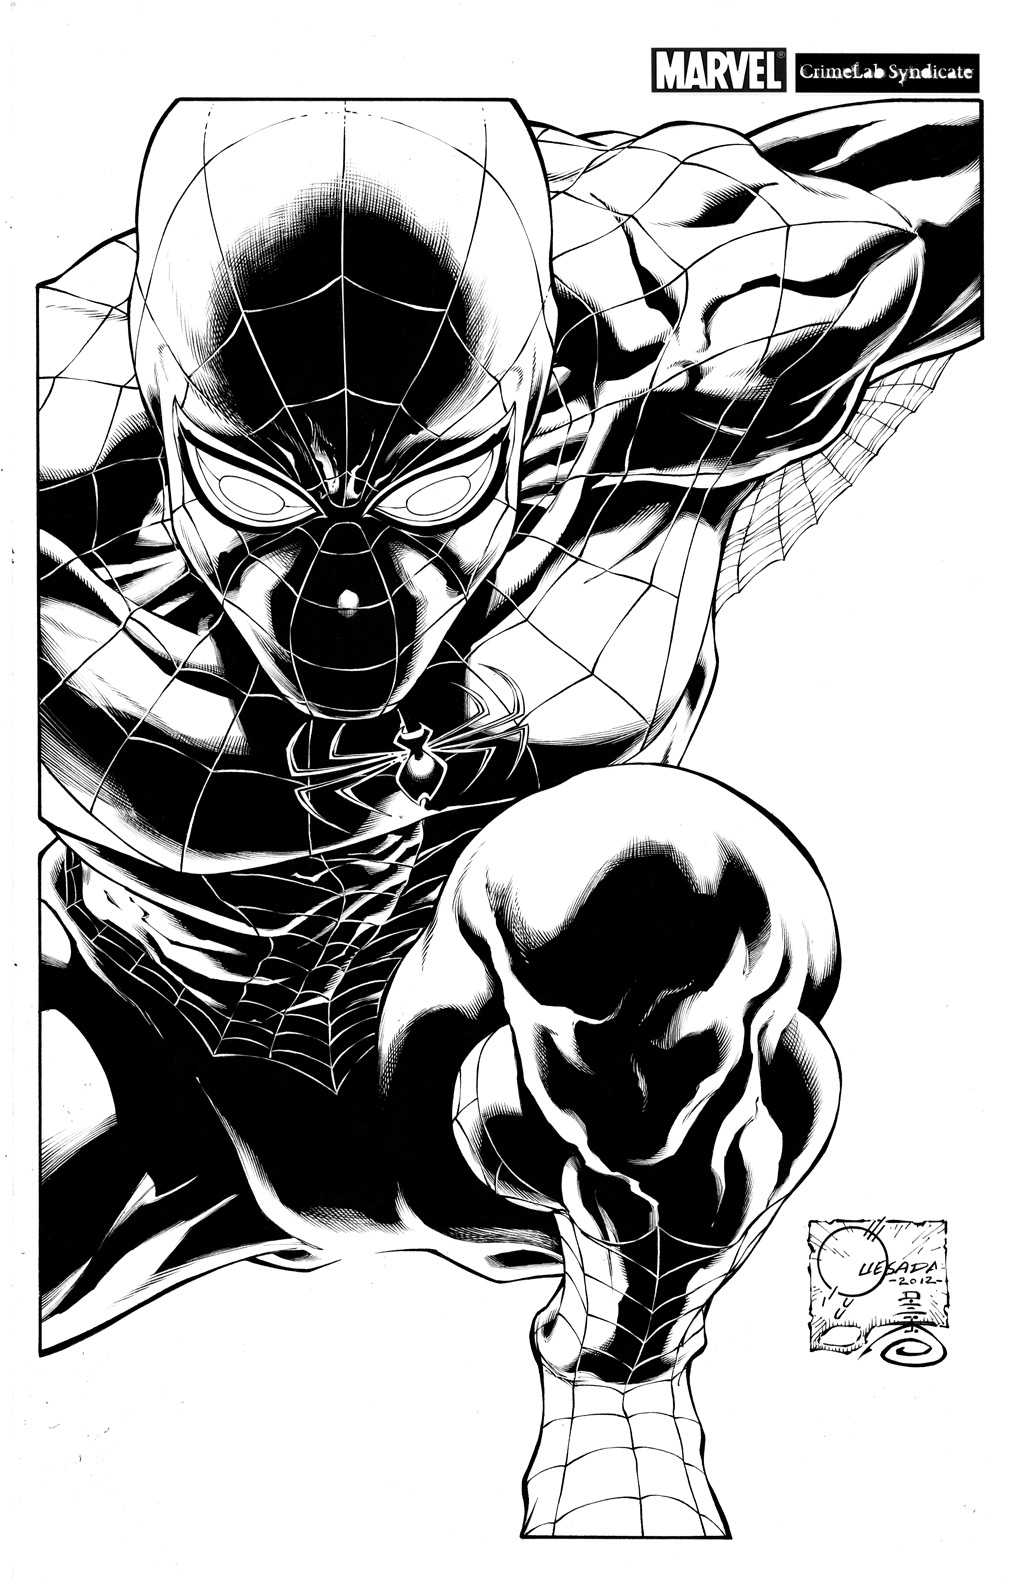 SUPERIOR SPIDER-MAN #1 QUESADA SKETCH VAR NOW